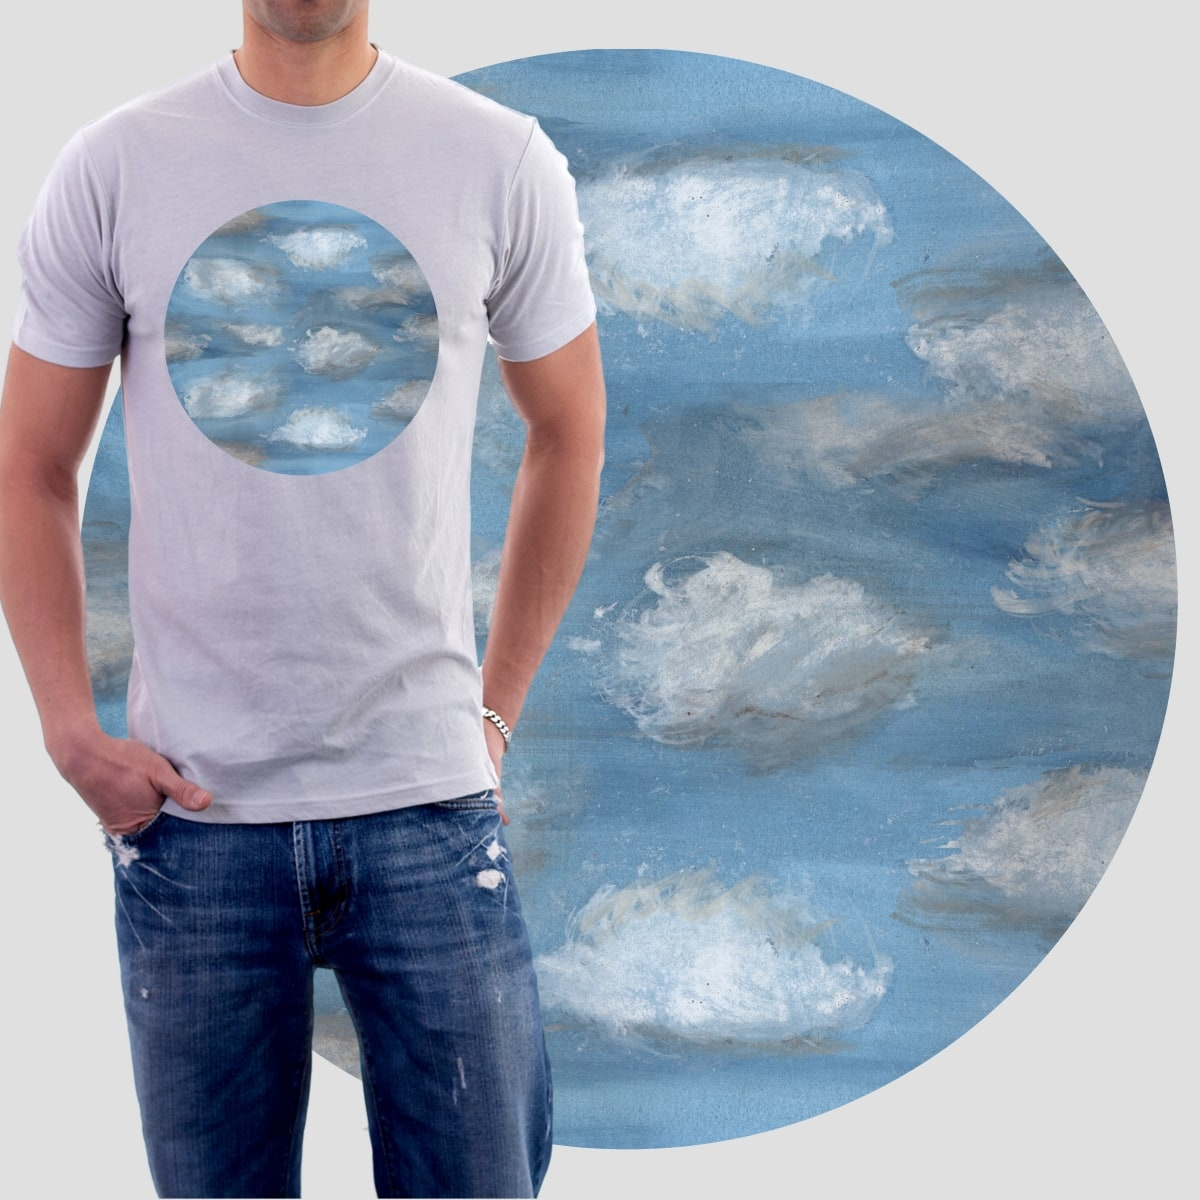 clouds by gasponce on Threadless